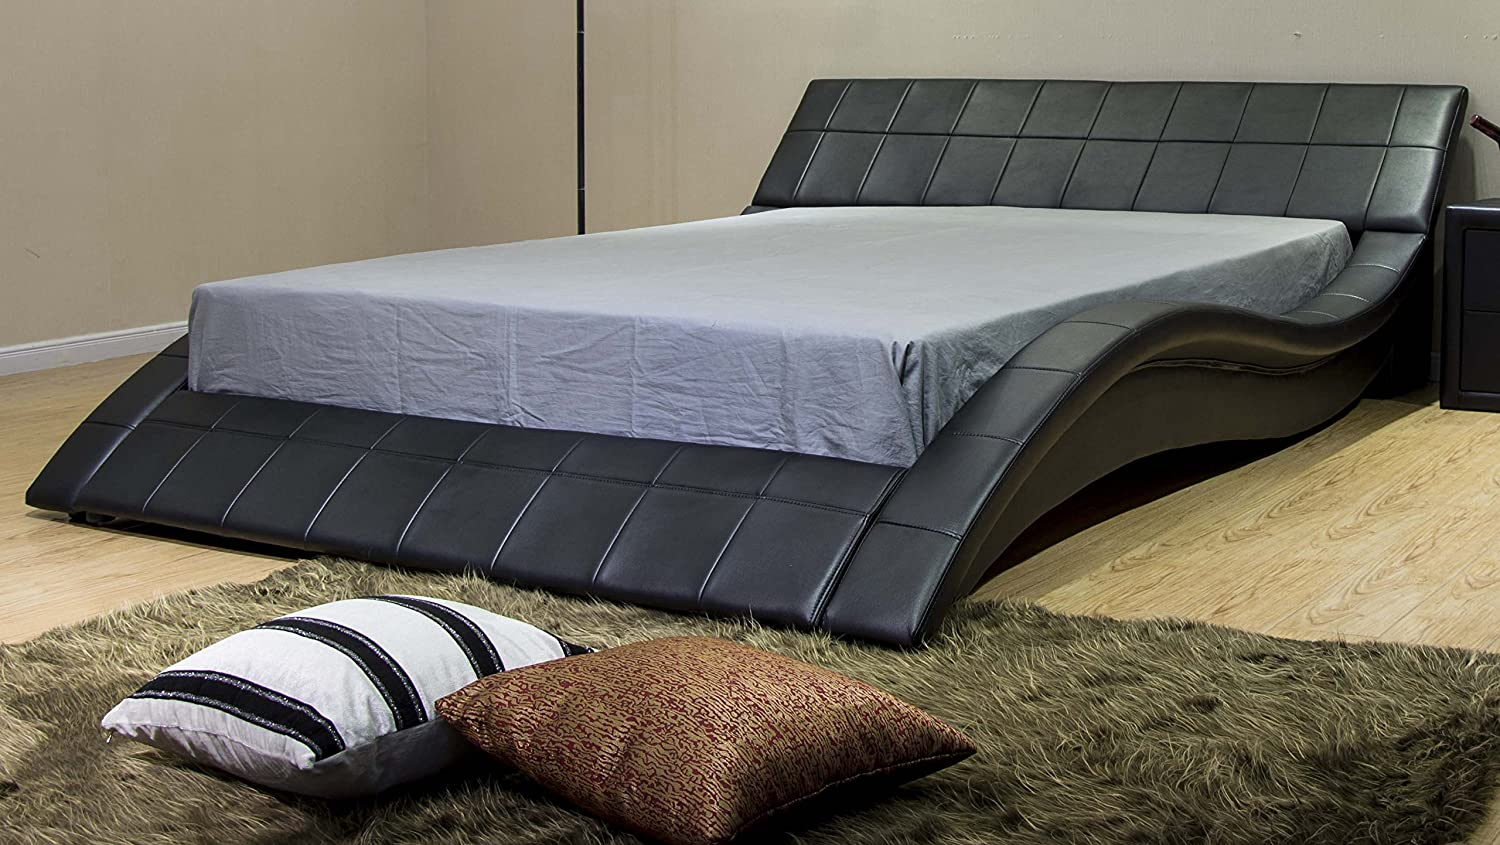 Top 8 Best Curved Platform Beds Reviews in 2020 34